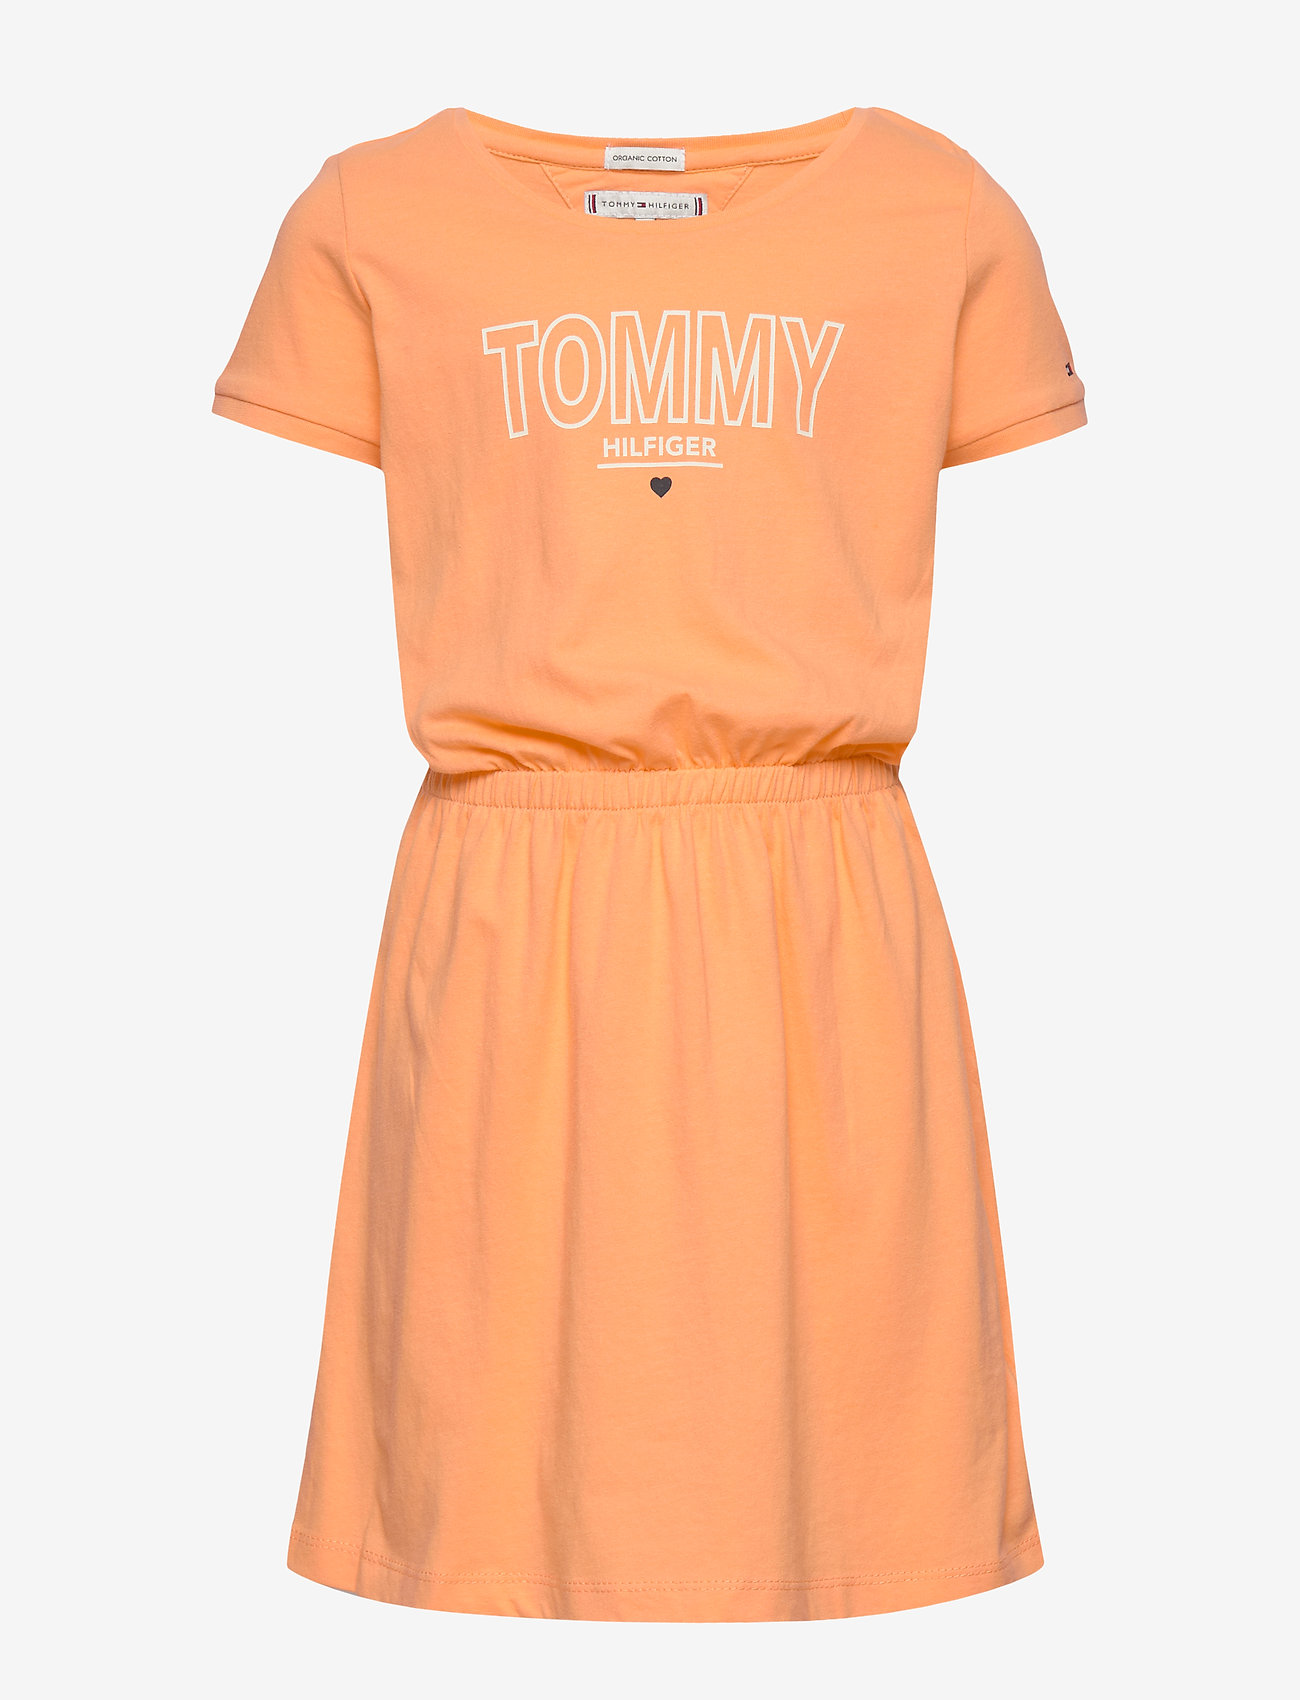 Tommy Hilfiger - JERSEY TEE DRESS S/S - robes - melon orange - 0